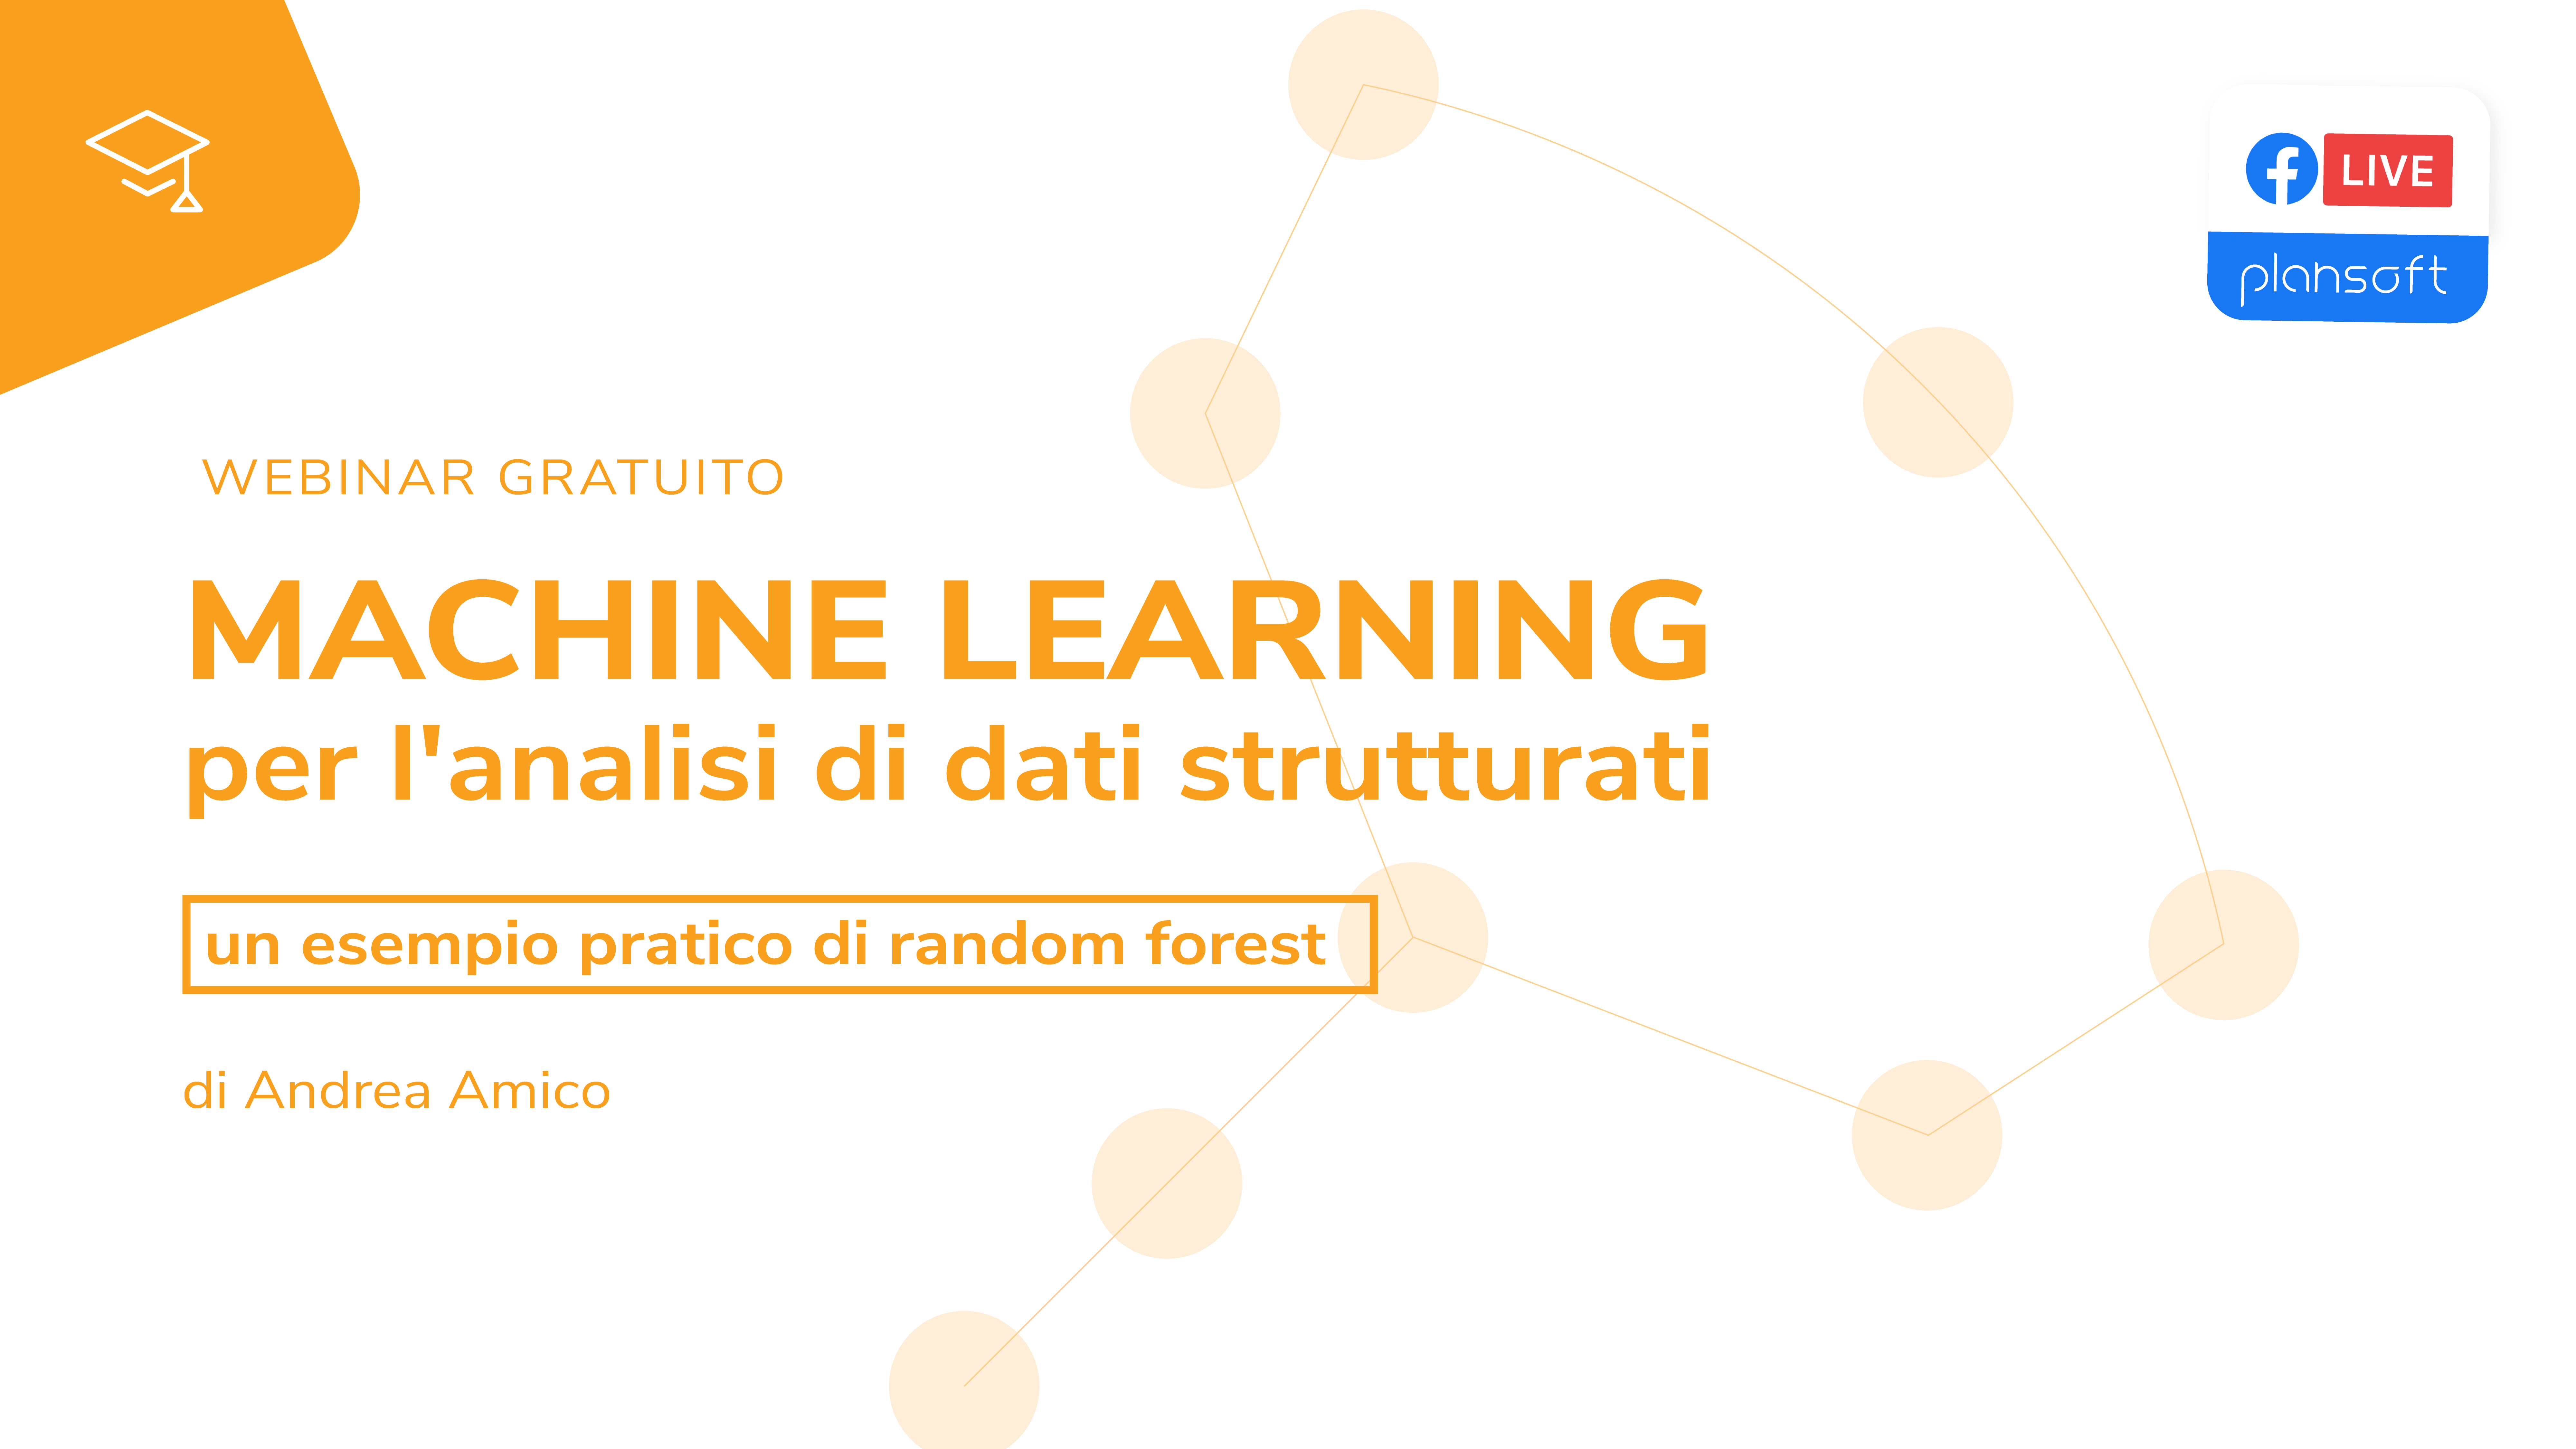 Machine Learning per l'analisi dei dati